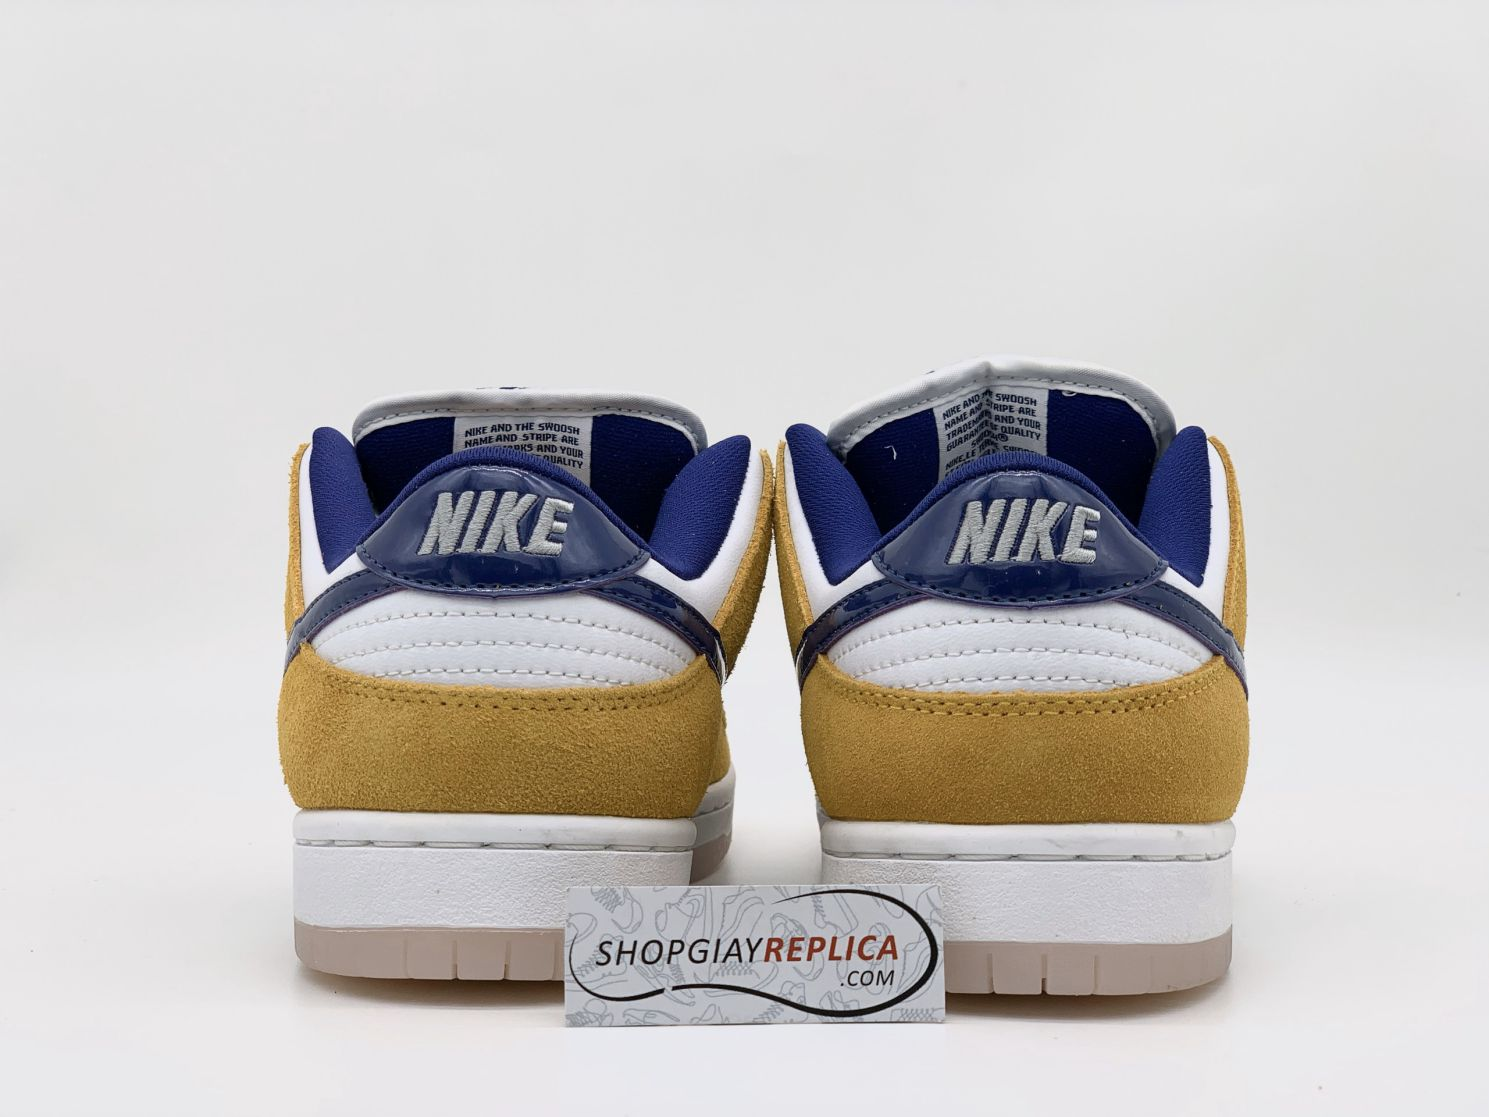 Nike SB Dunk thấp Laser Orange